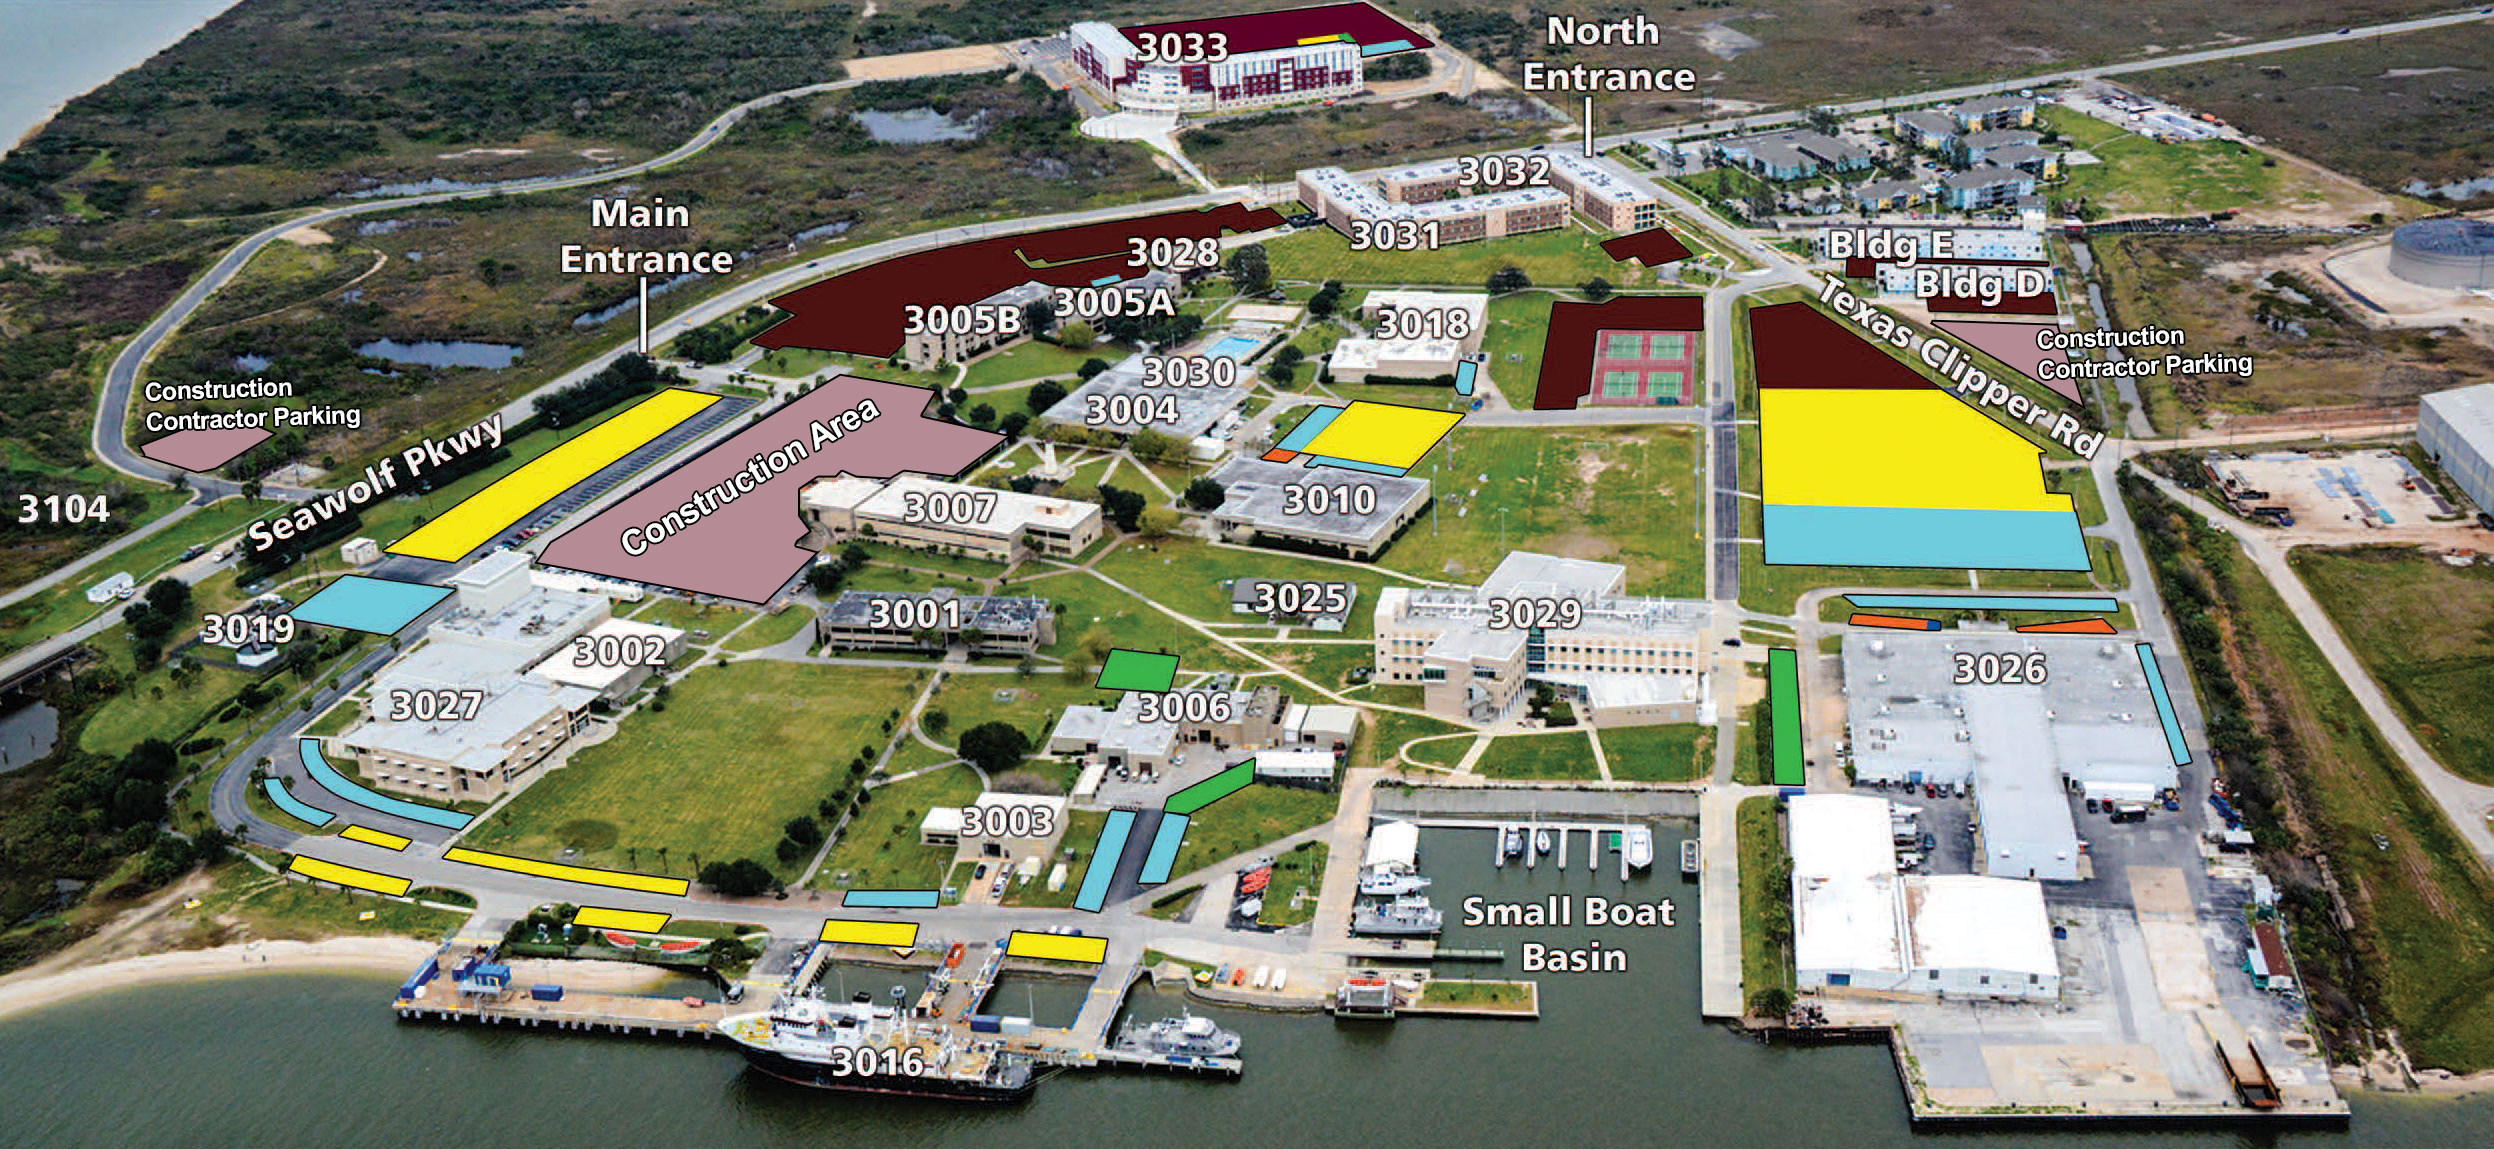 University Of St Thomas Houston Campus Map.Texas A M Campus Map Business Ideas 2013